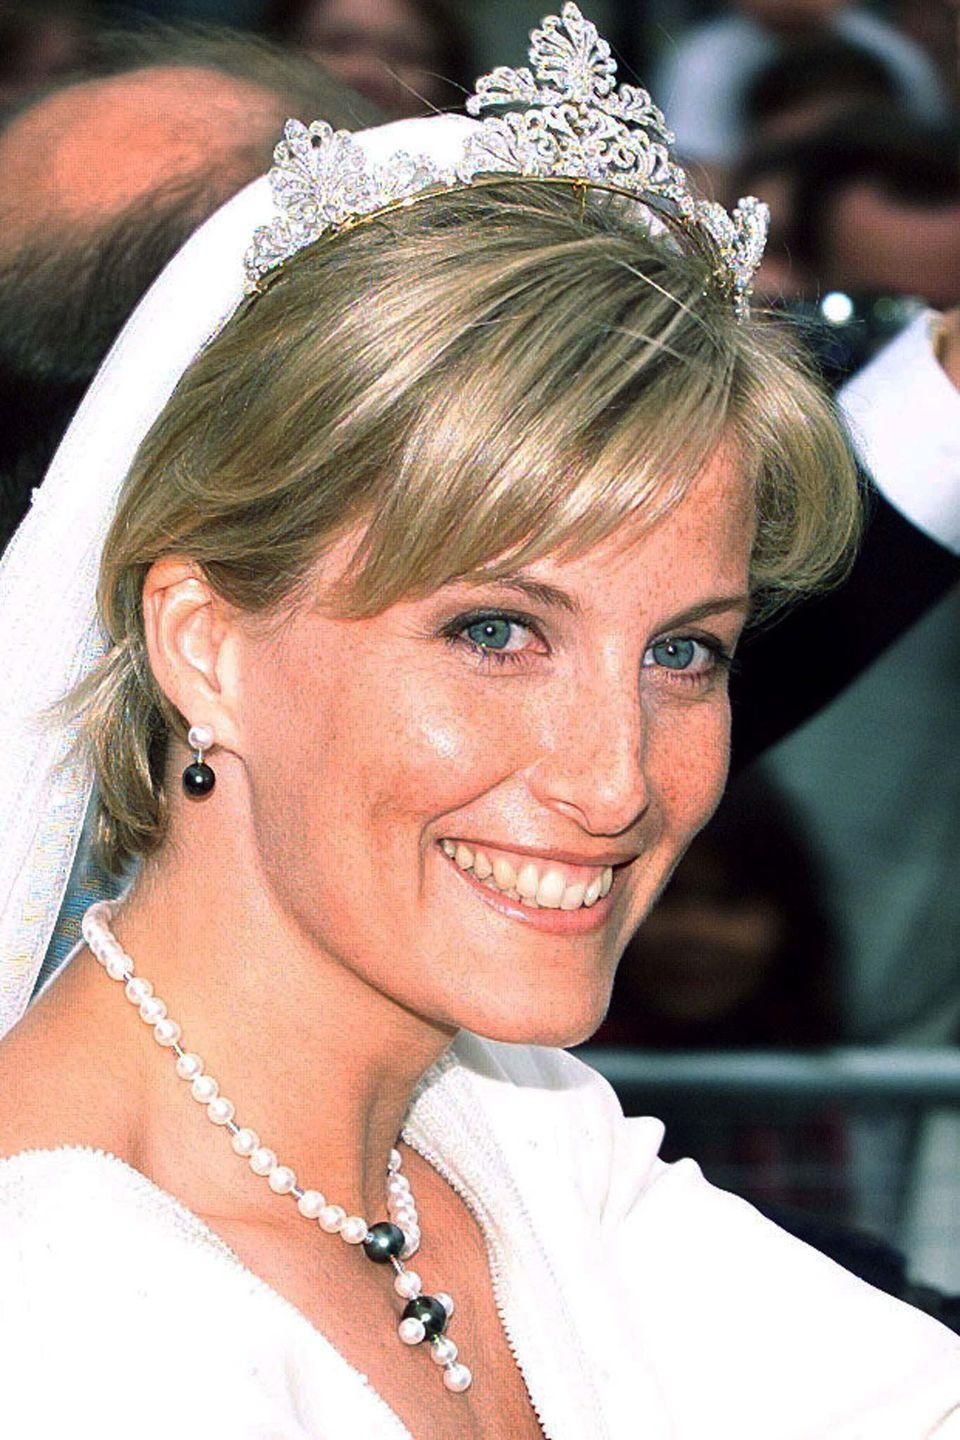 <p>When Sophie Rhys-Jones walked down the aisle to marry Prince Edward in 1999, she wore a tiara that had not been seen before. It is believed to be a piece from the Queen's collection that had been reworked for the occasion. Sophie has since worn the tiara for a number of other events.</p>